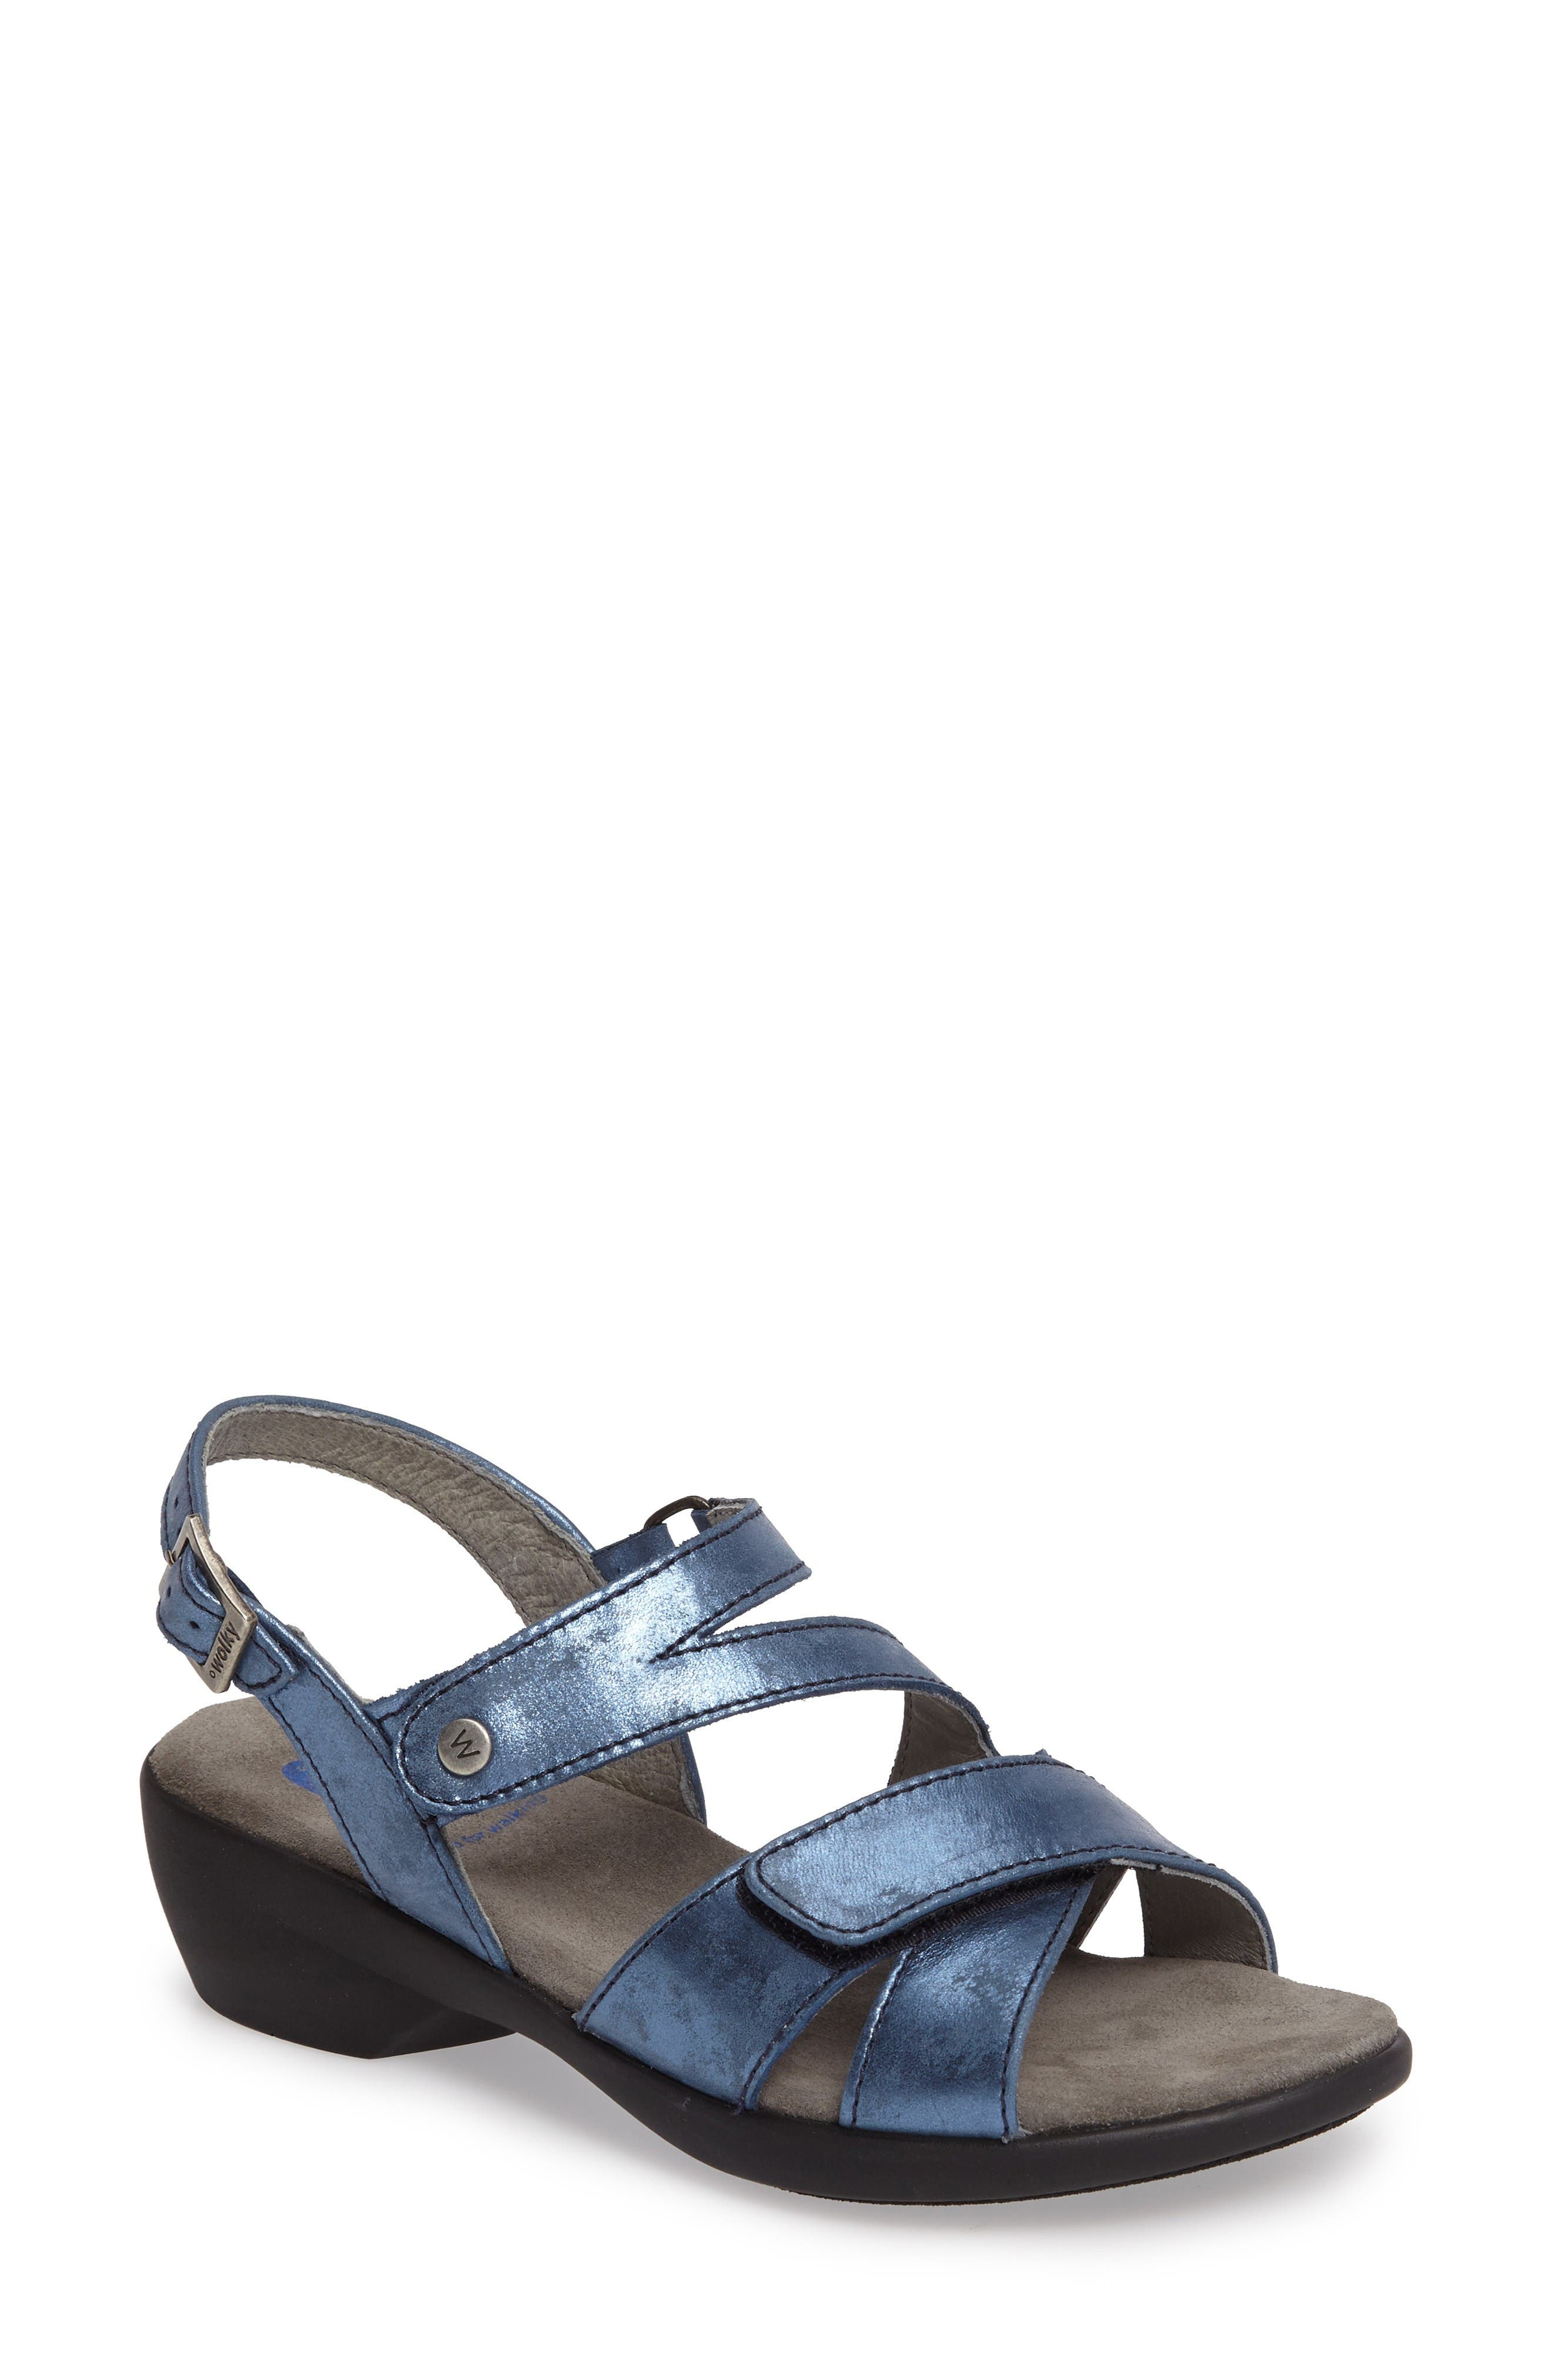 Alternate Image 1 Selected - Wolky Fria Sandal (Women)